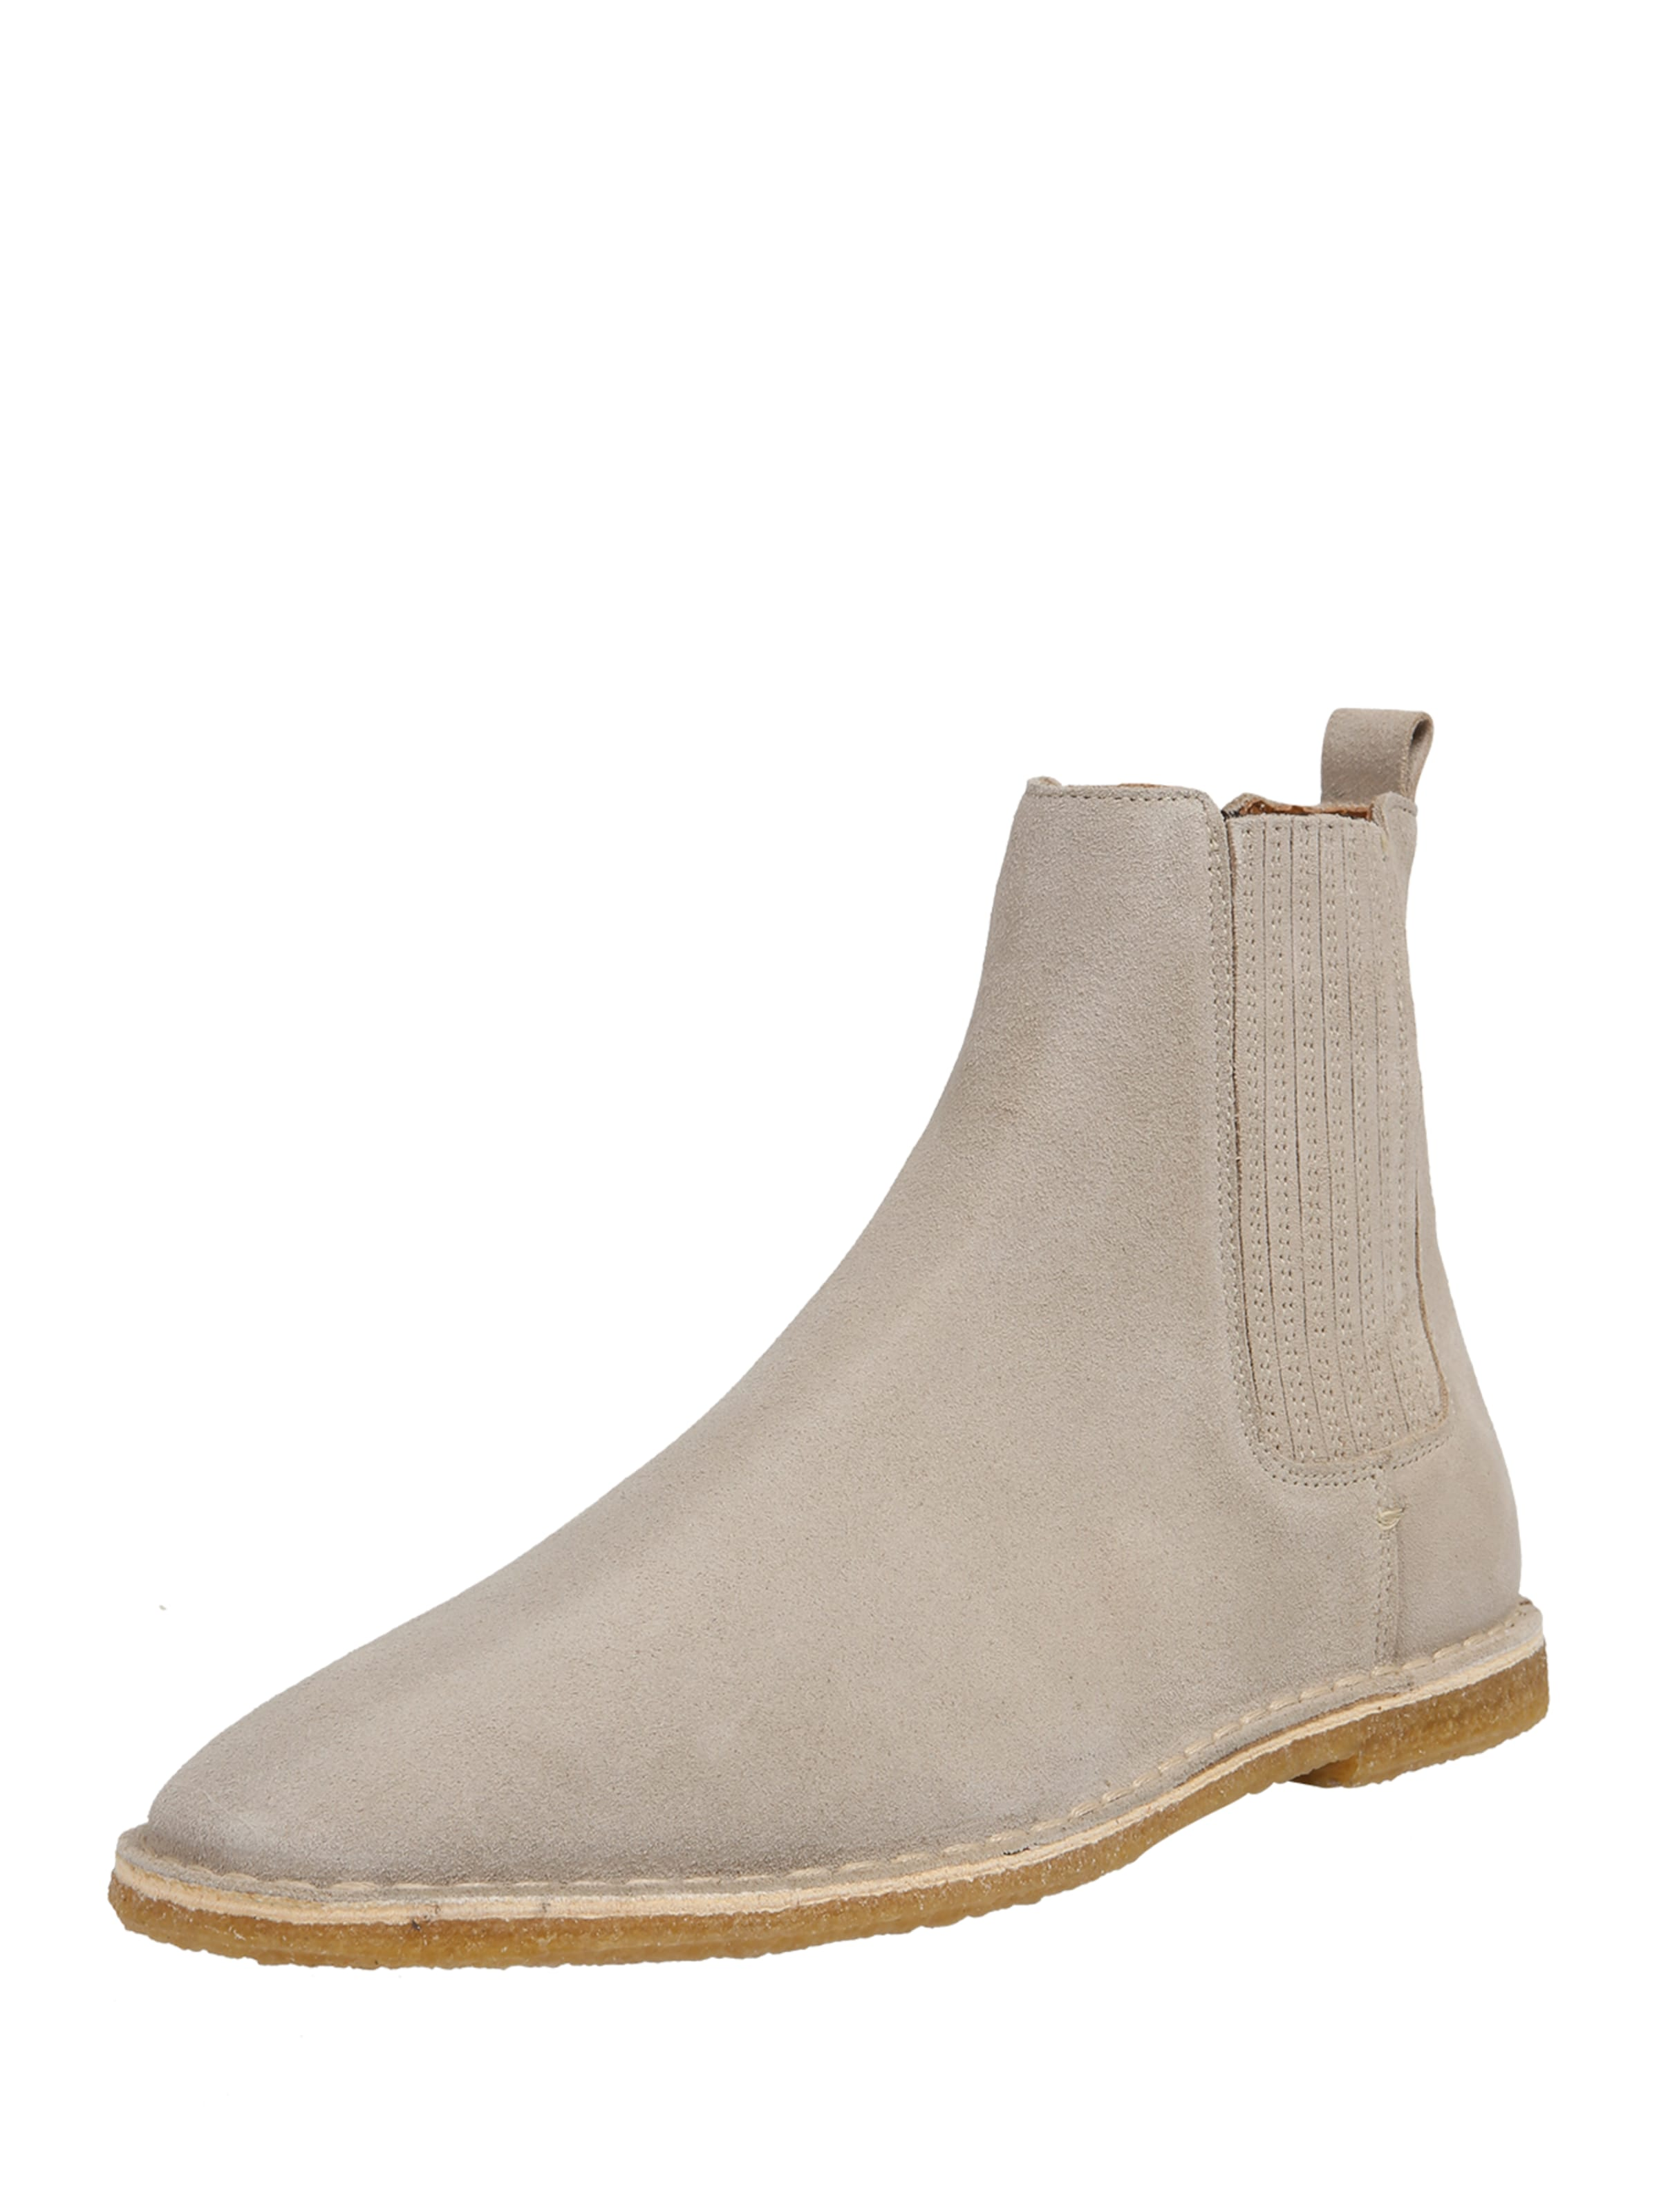 Beige Chelsea You Magic 'keno' En About Boots Fox X tHIqP8I